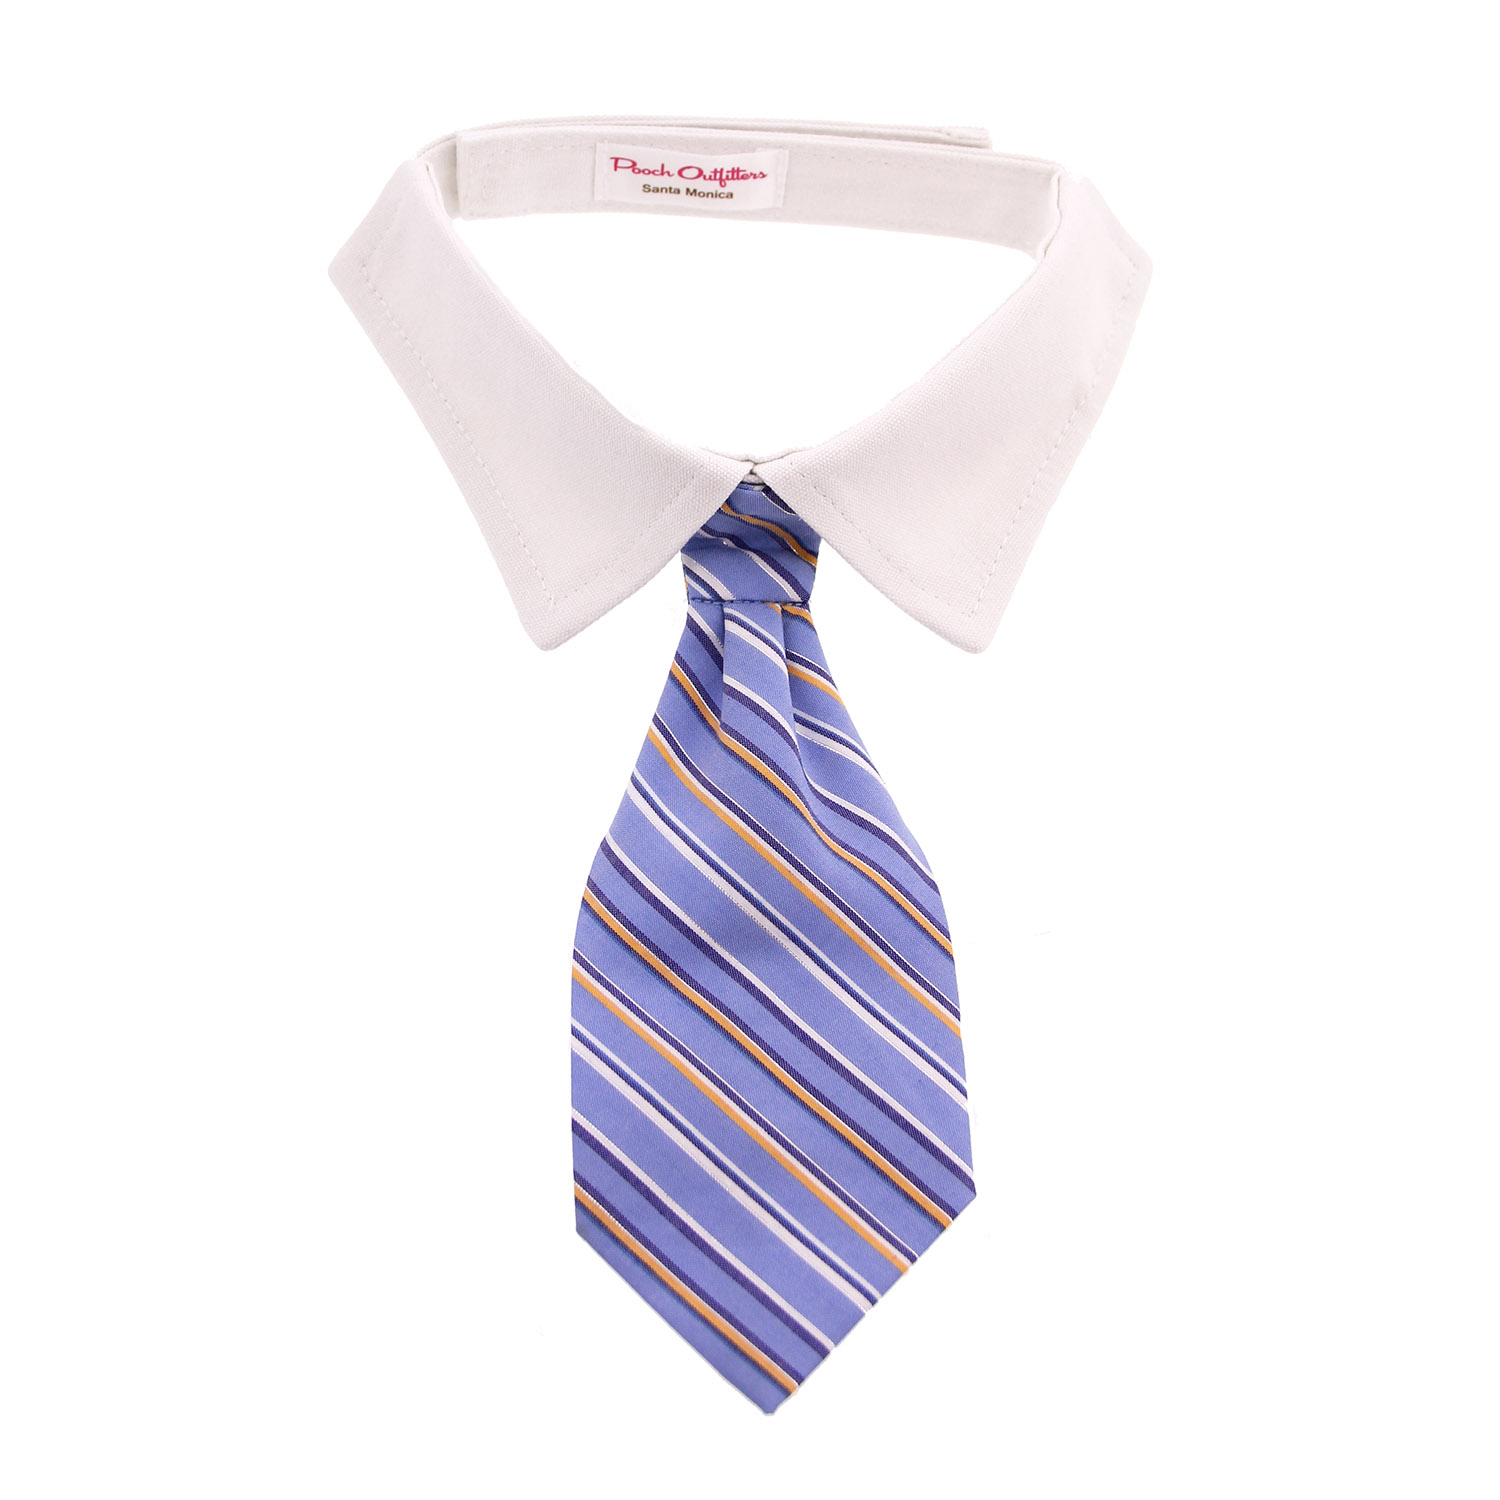 kyle shirt collar and tie blue striped baxterboo